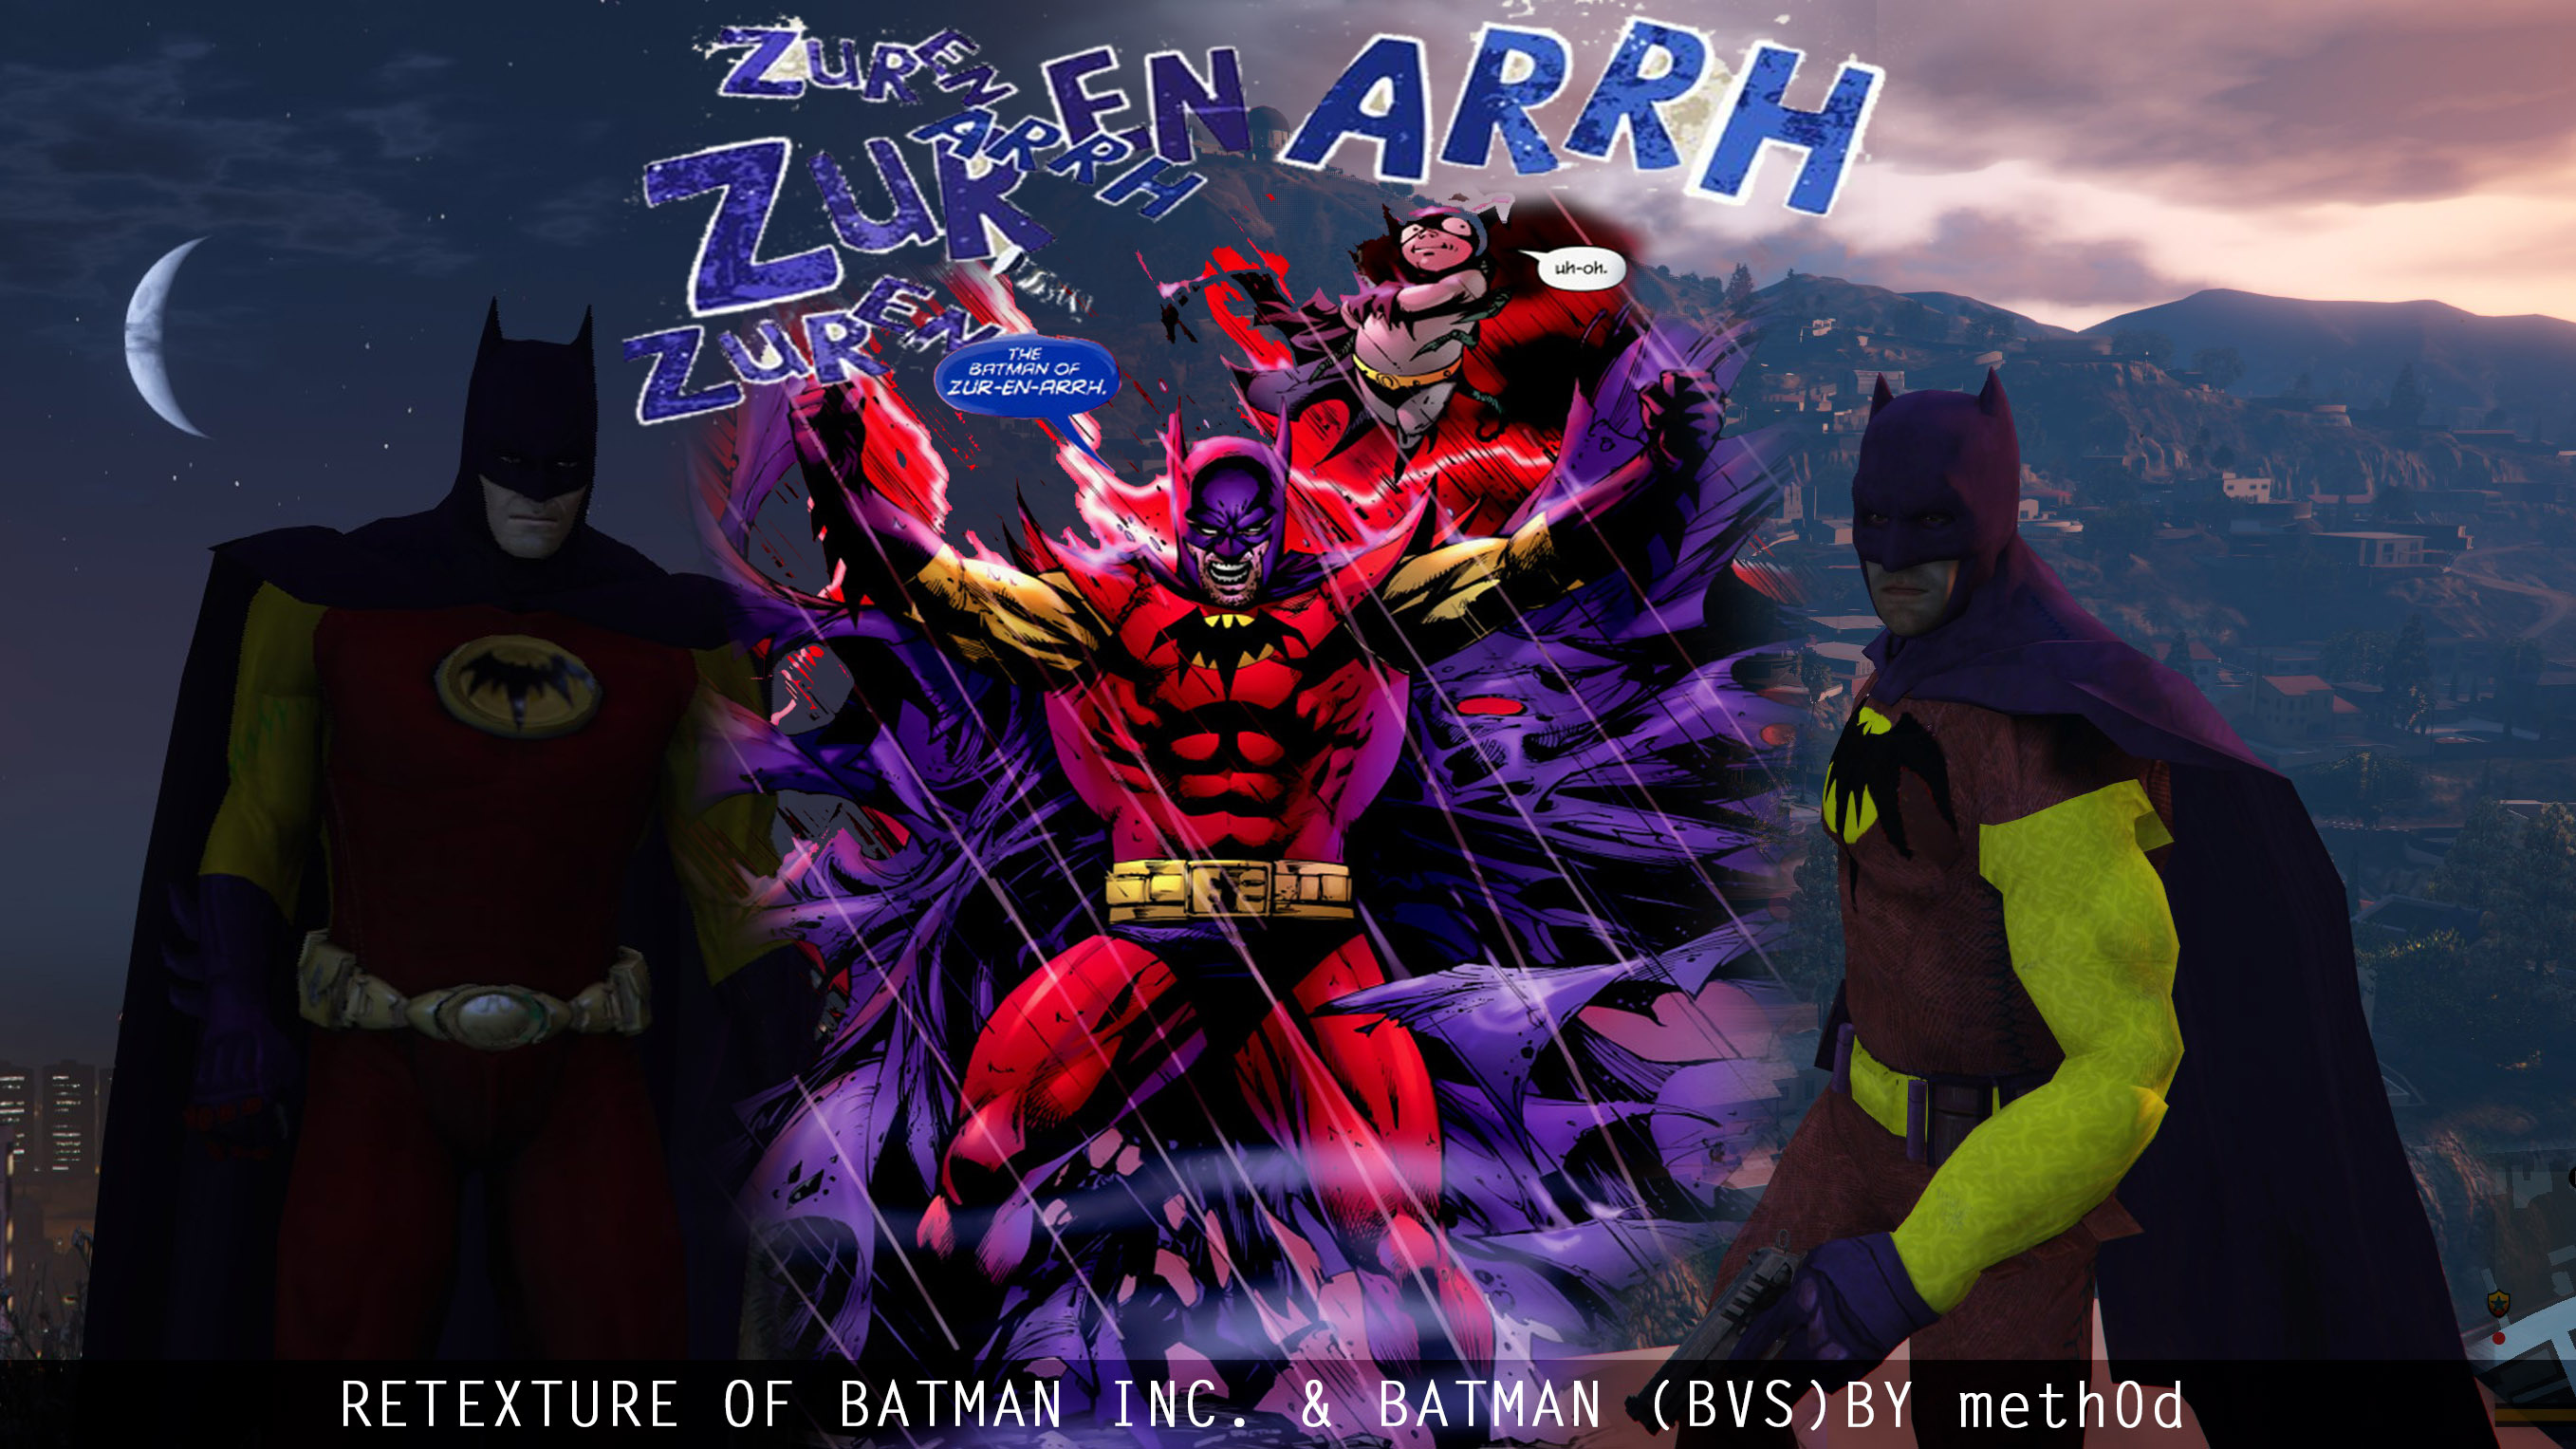 batman of zur-en-arrh